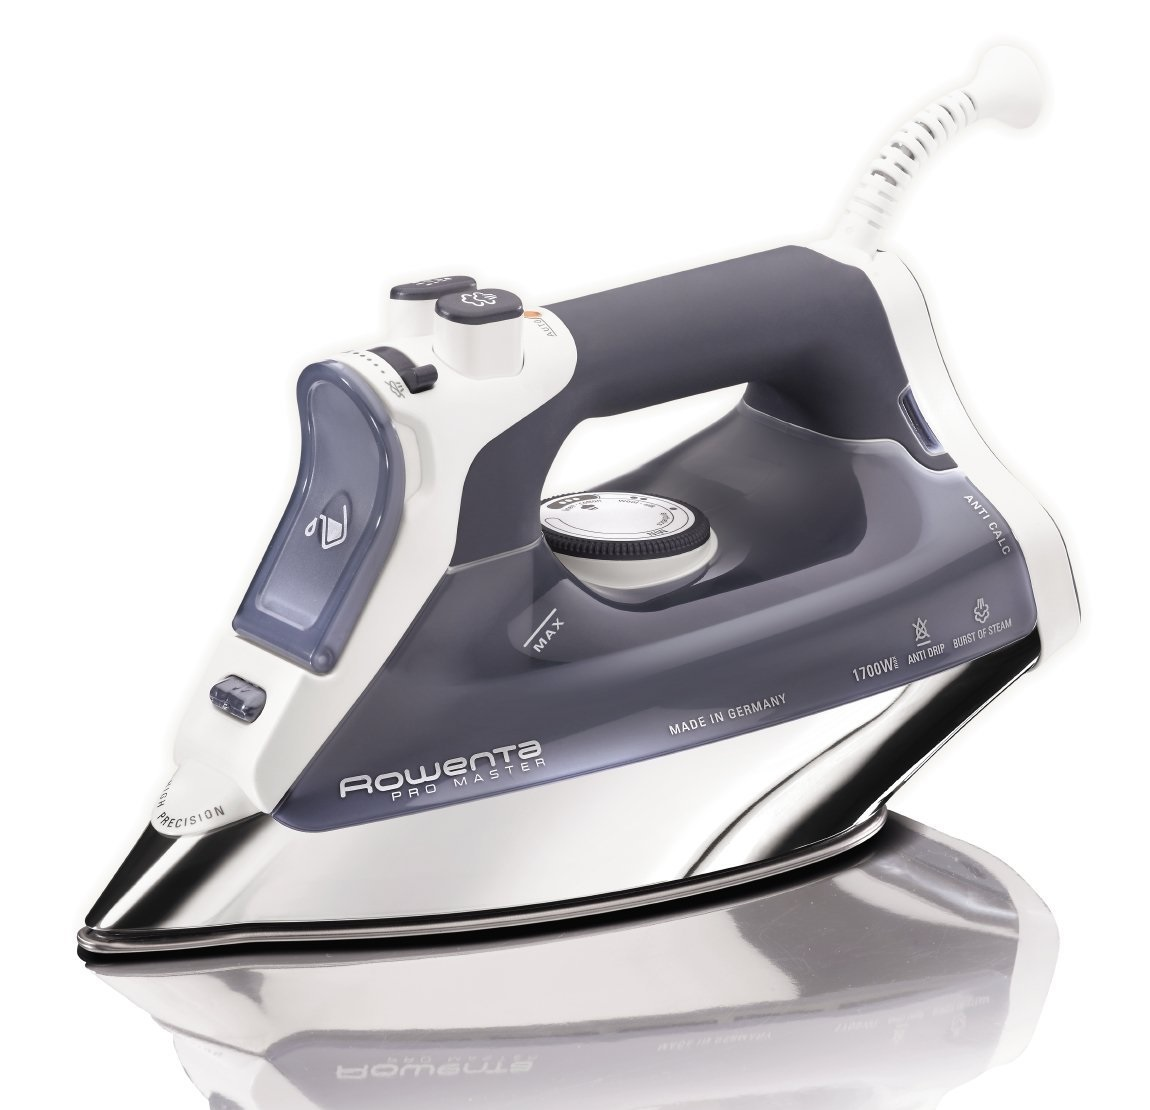 Clothes Iron Brands In India